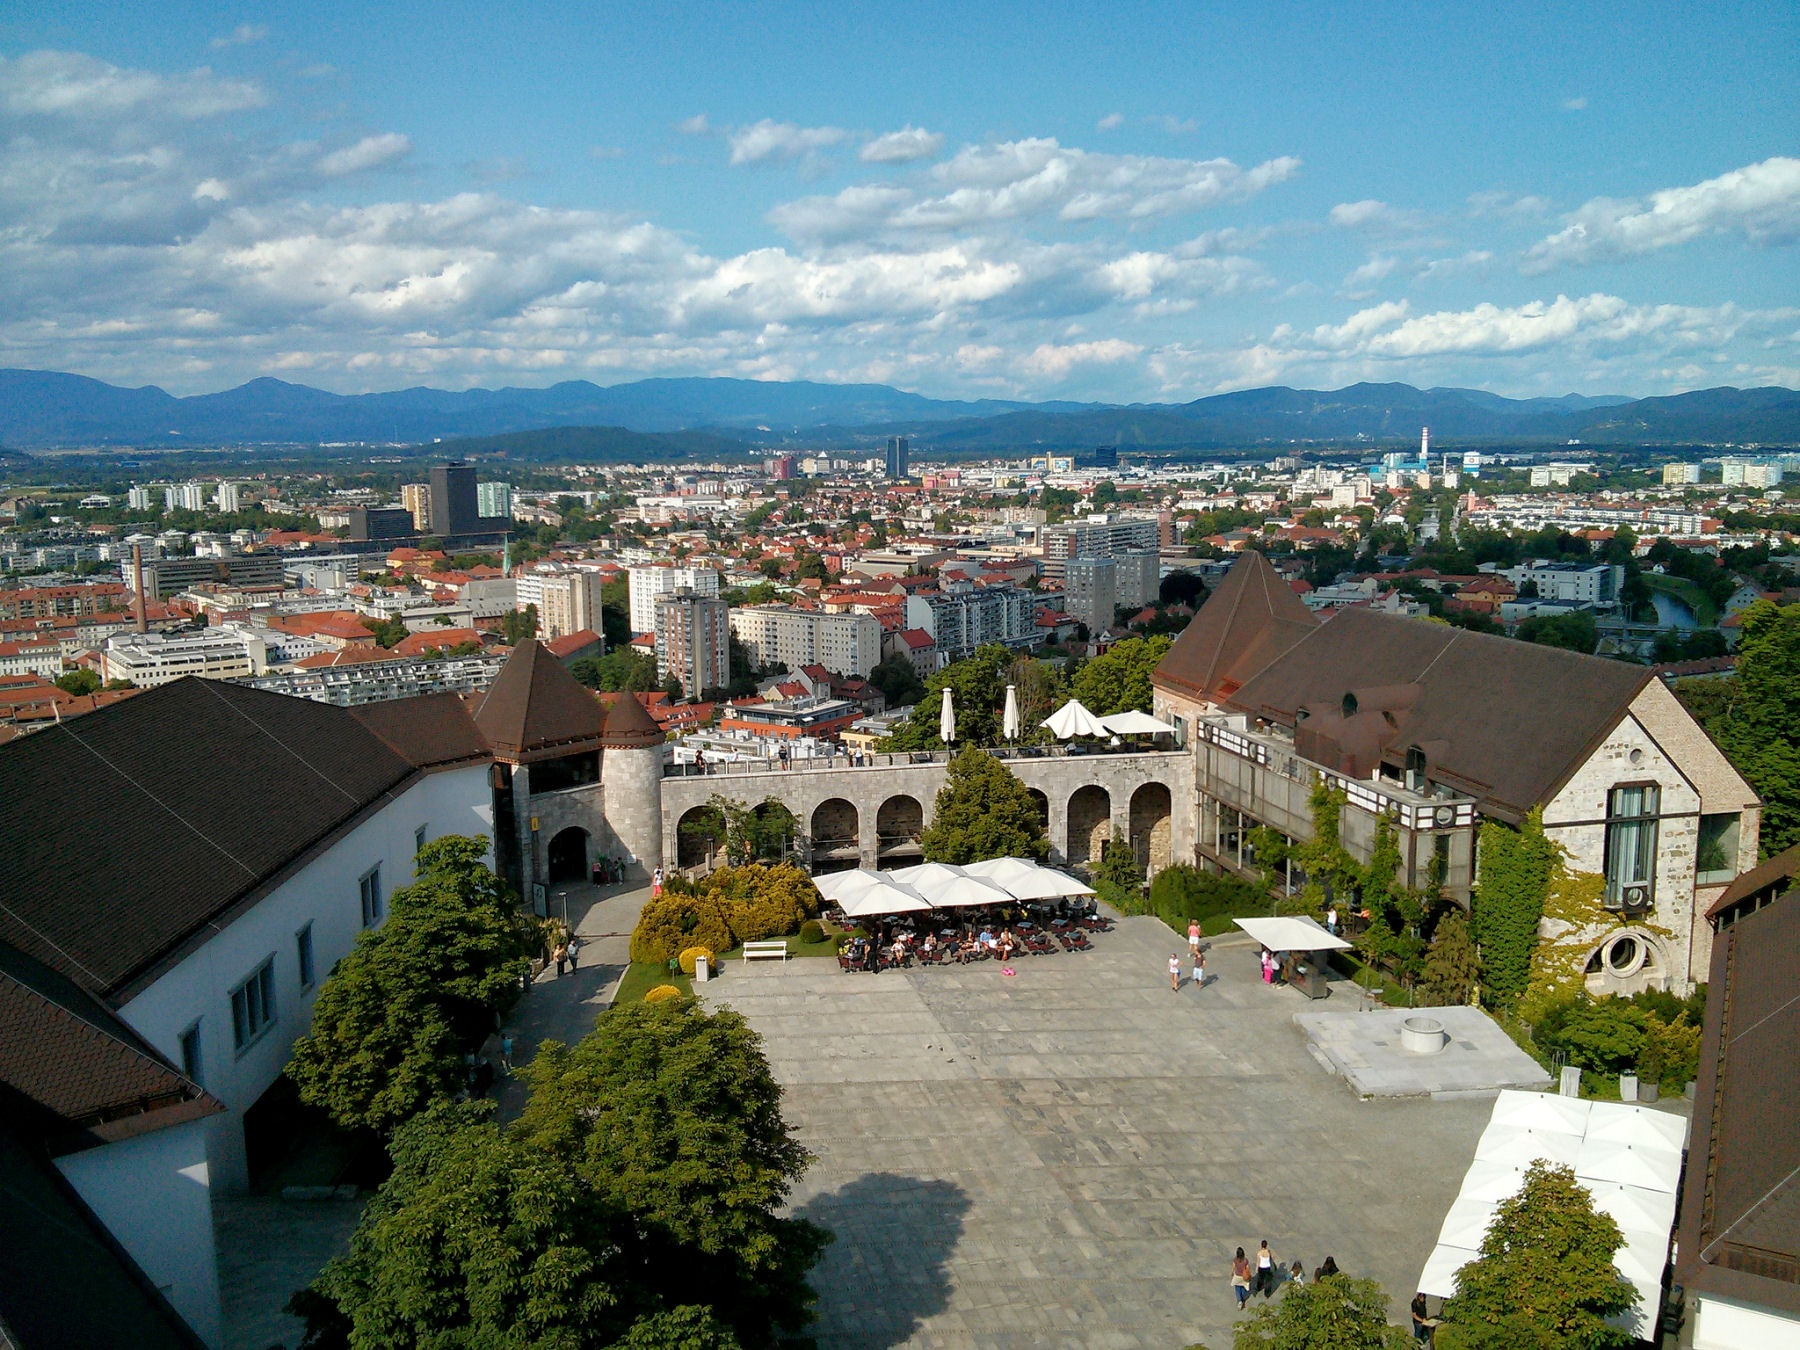 Ljubljana has a delicate charm and is a very popular tourist destination in Europe